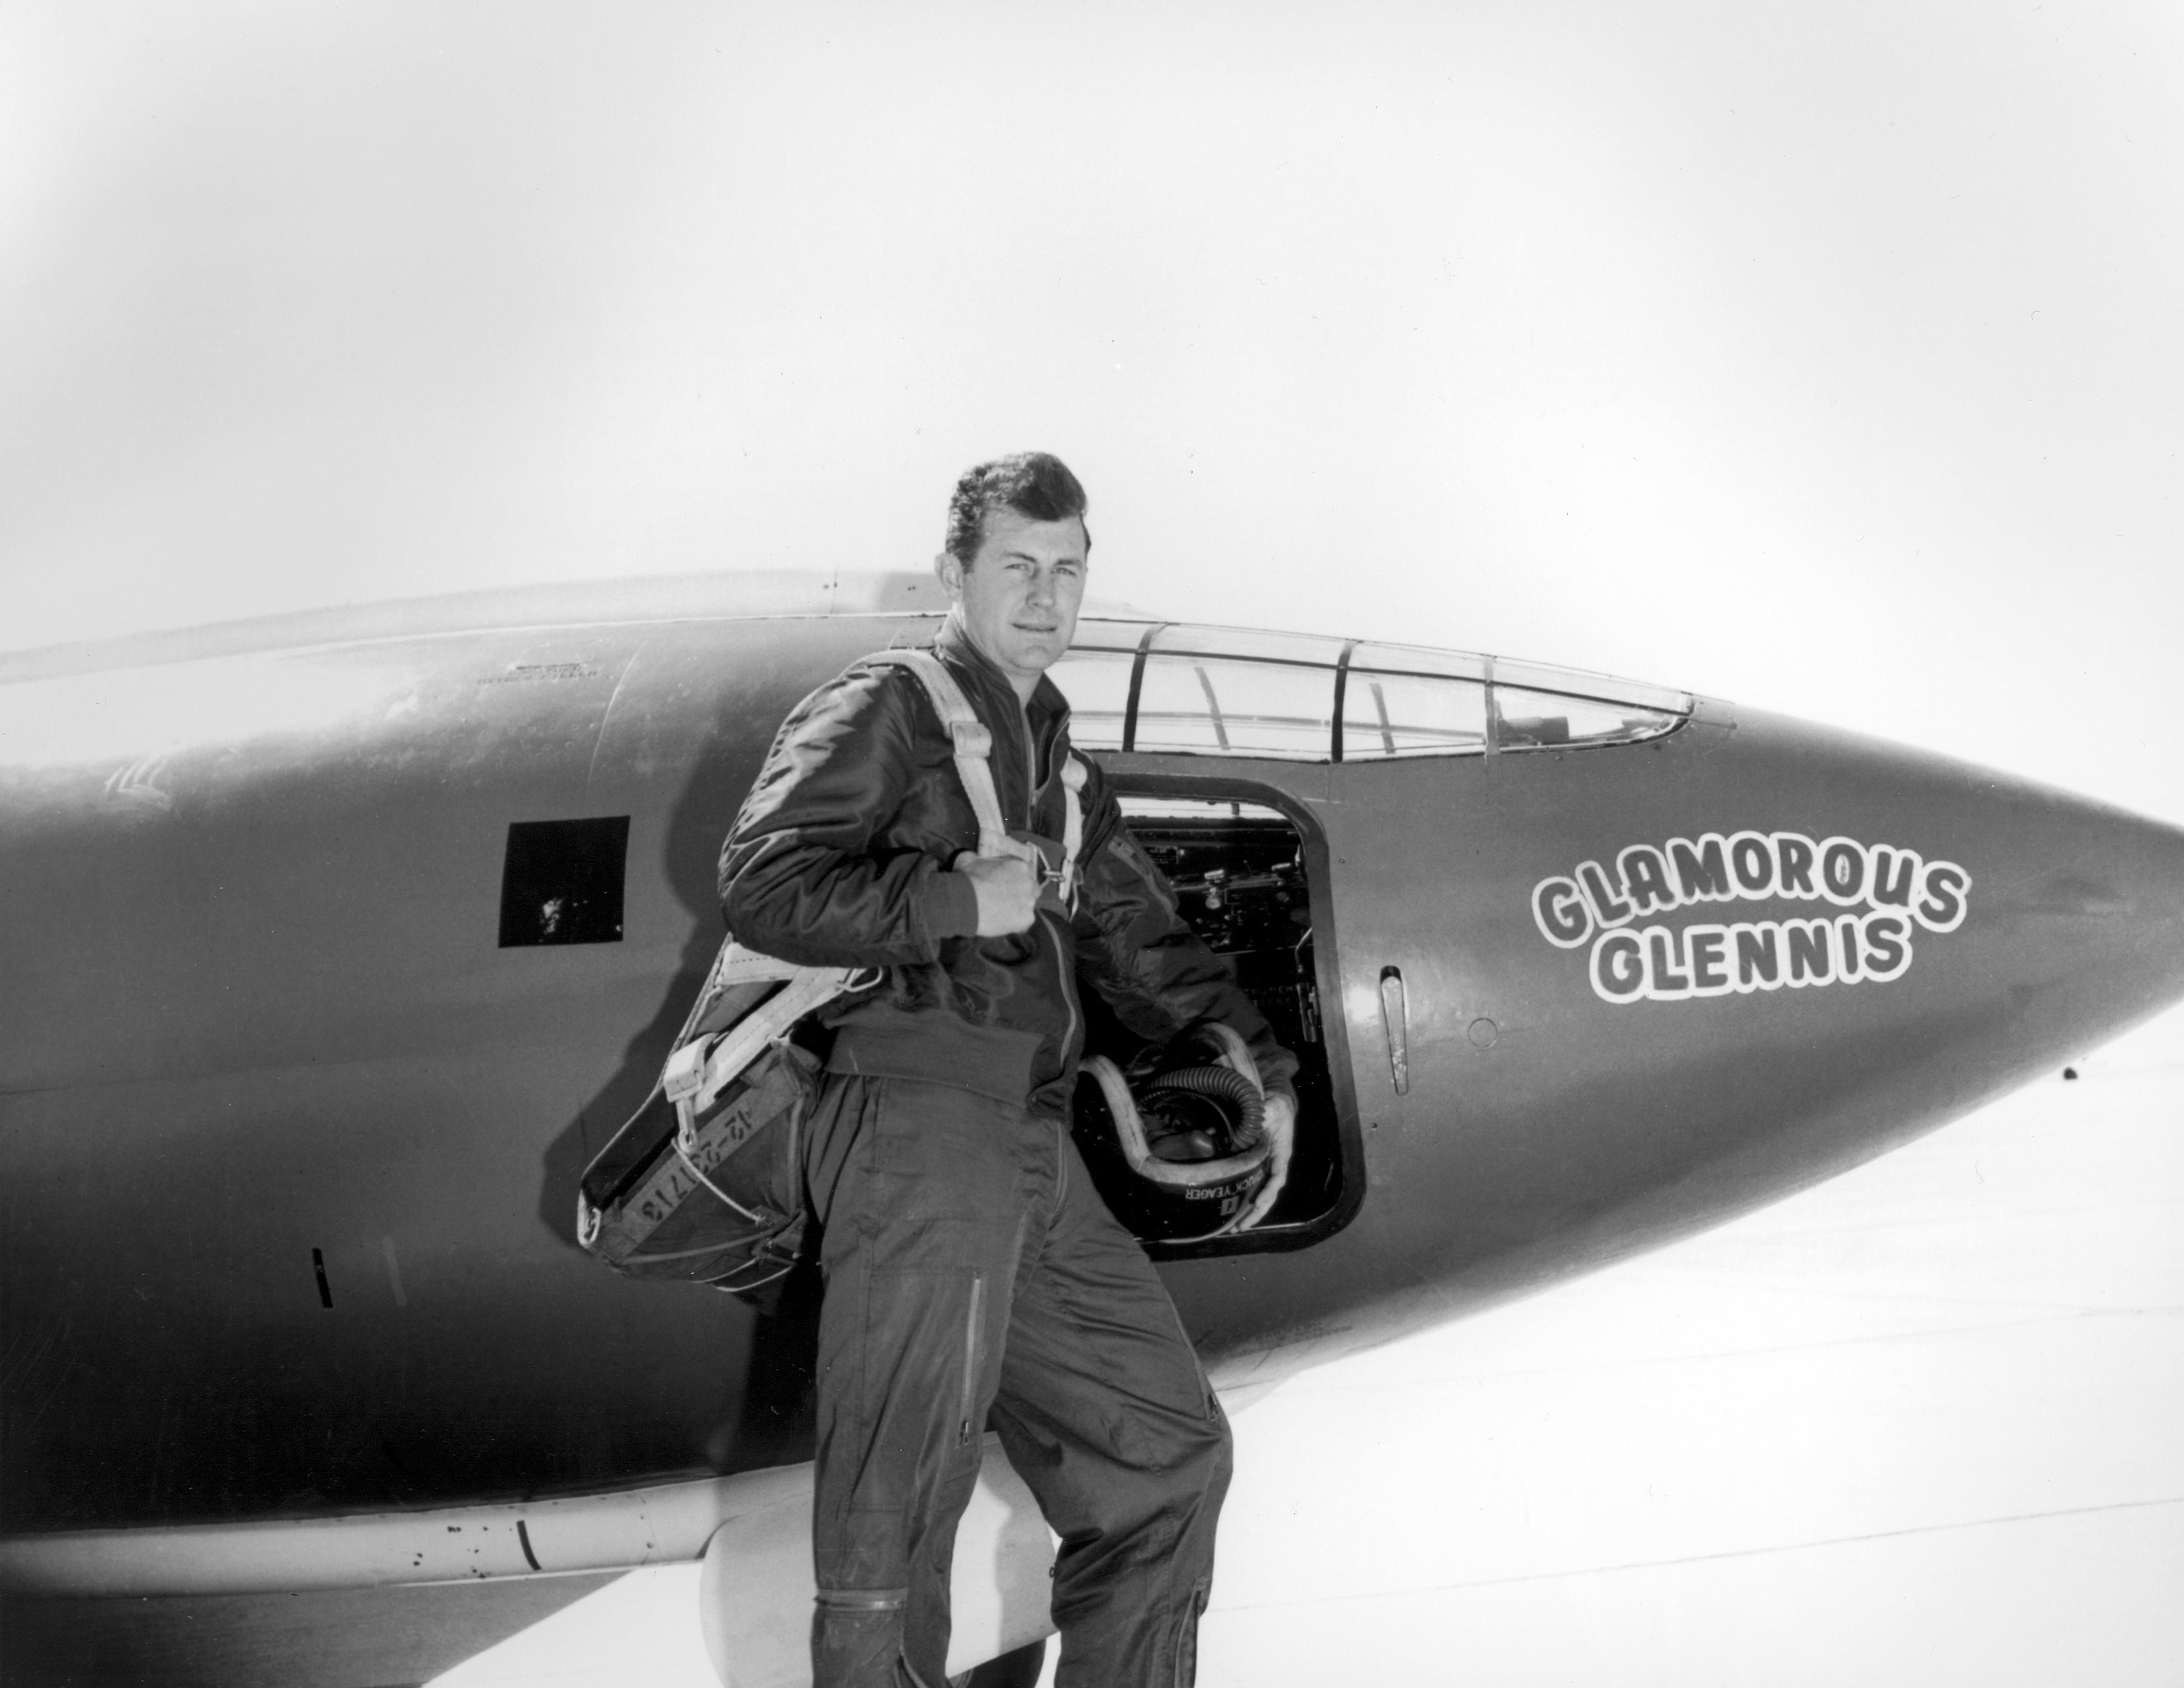 Softball players need to take a cue from Chuck Yeager and chase the demon at the edge of their abilities.